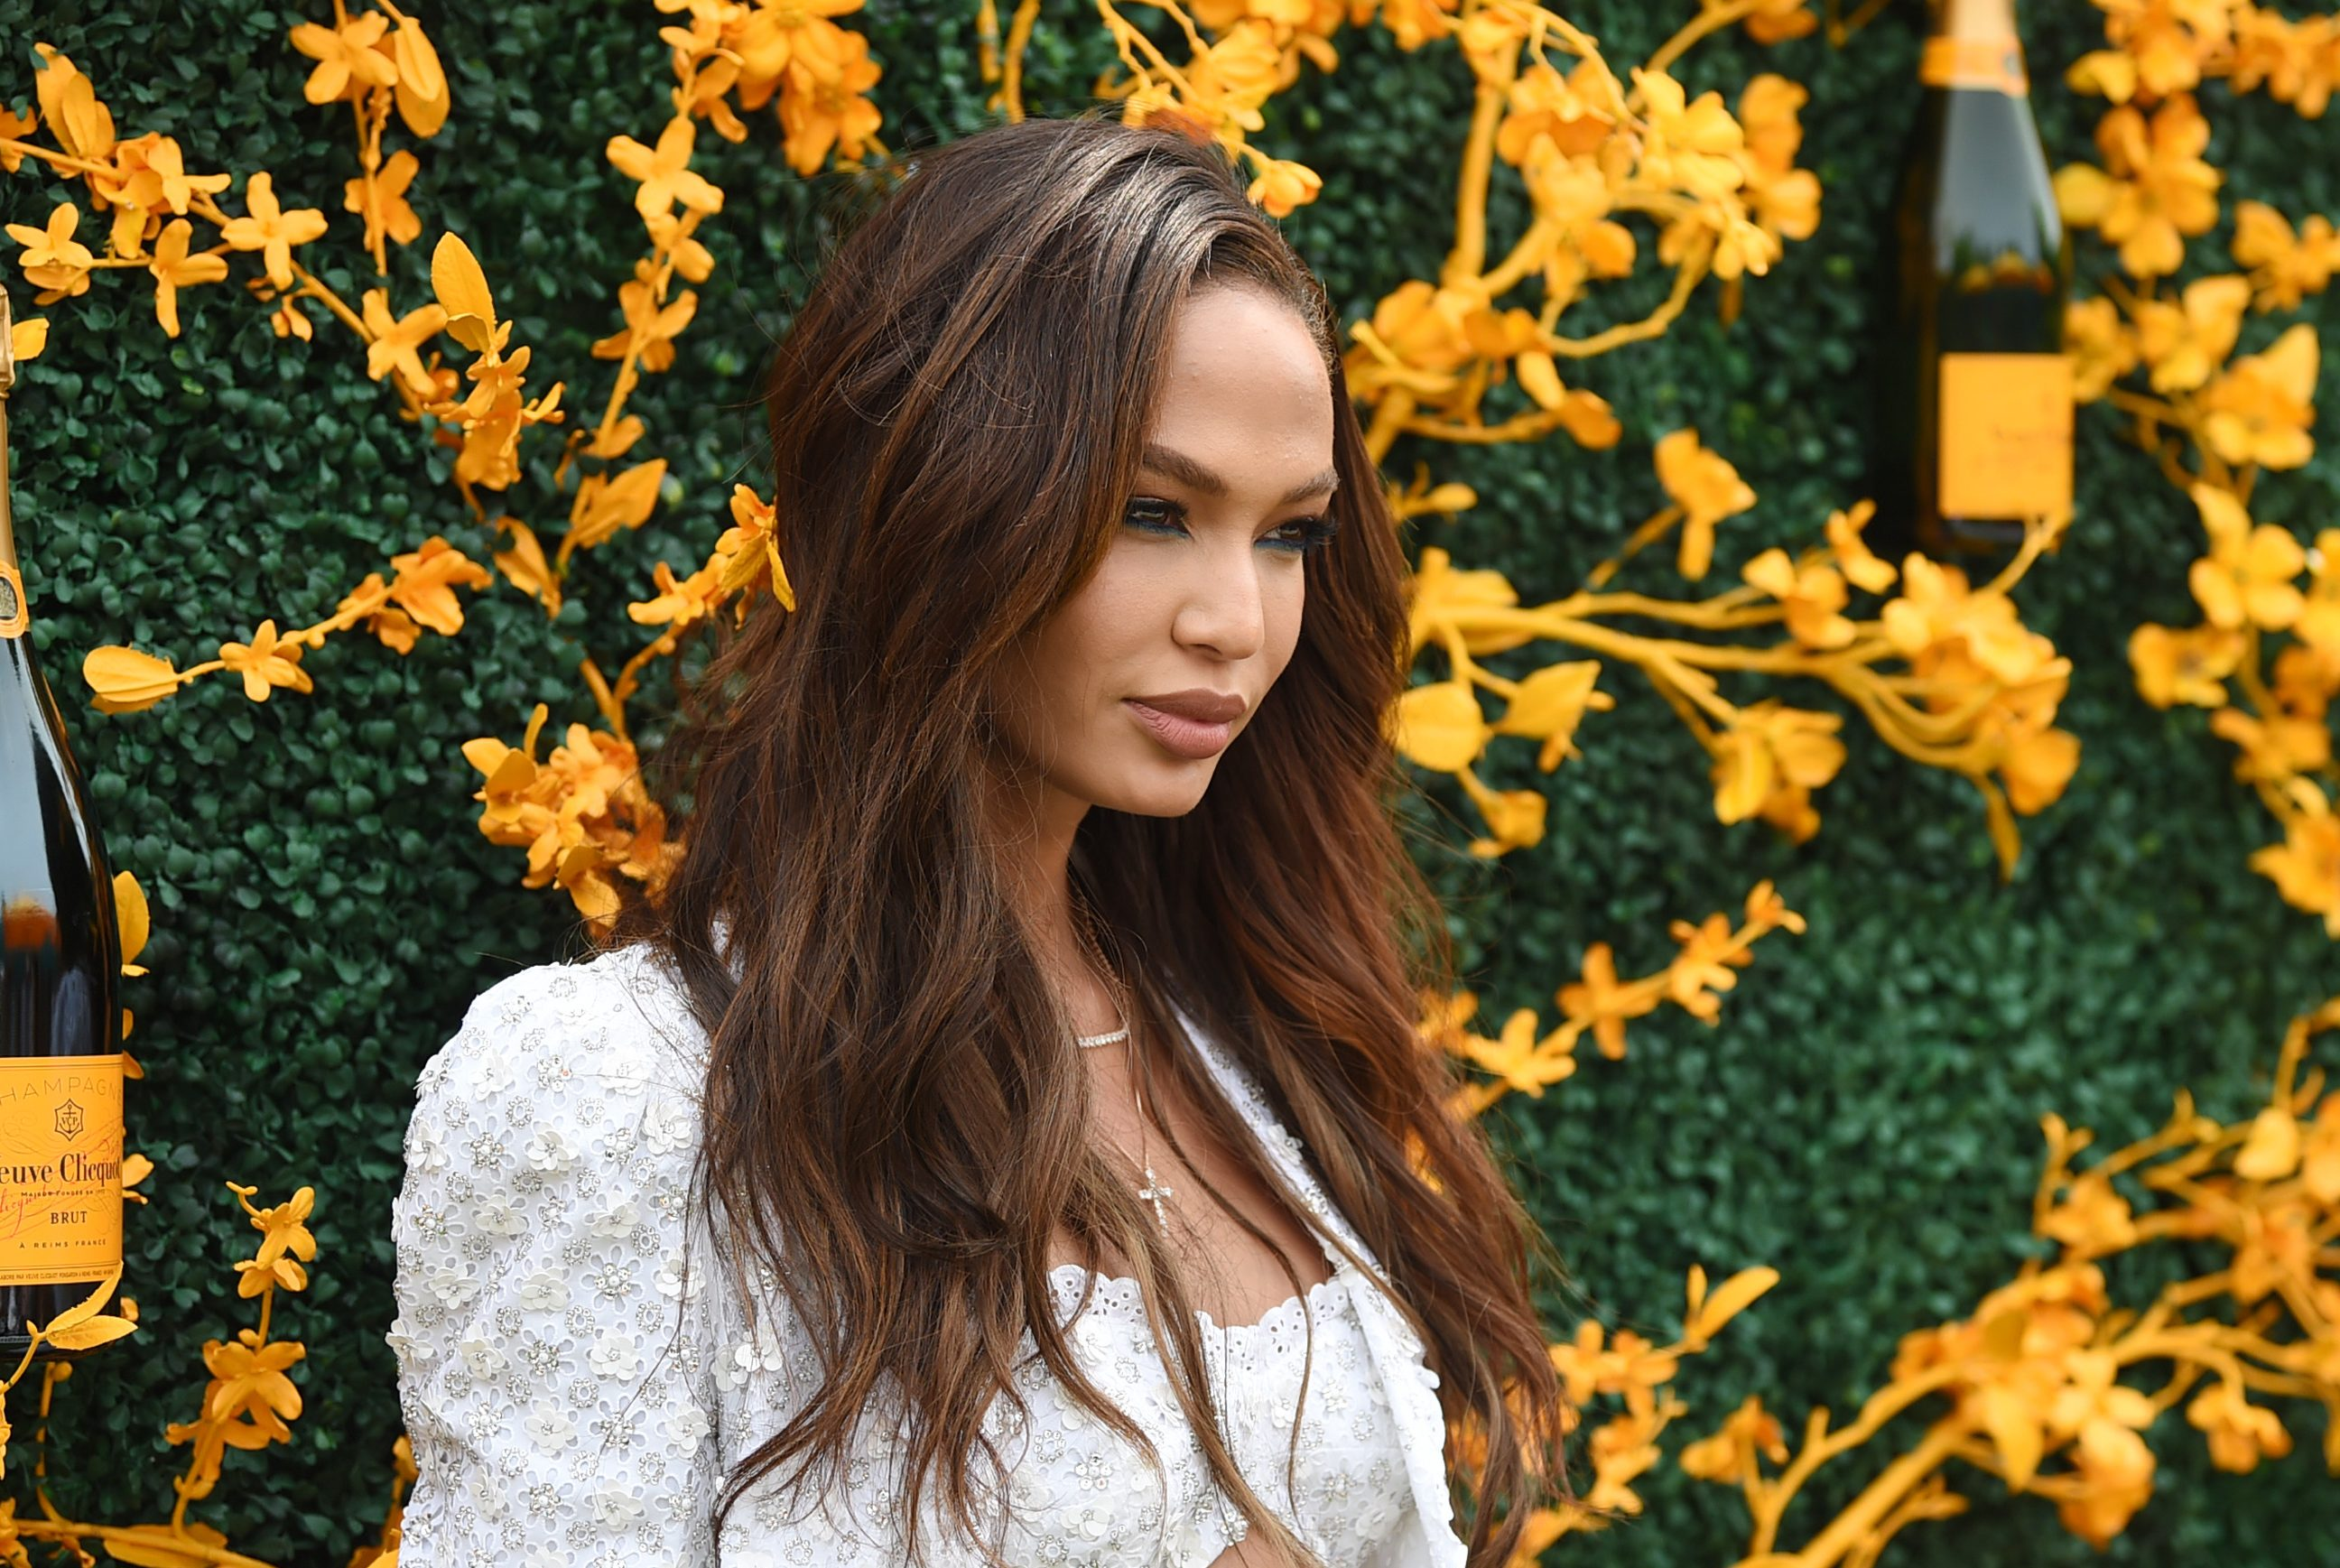 Joan Smalls Commits Half Her Salary to Black Lives Matter & Urges the Fashion Industry to Do More